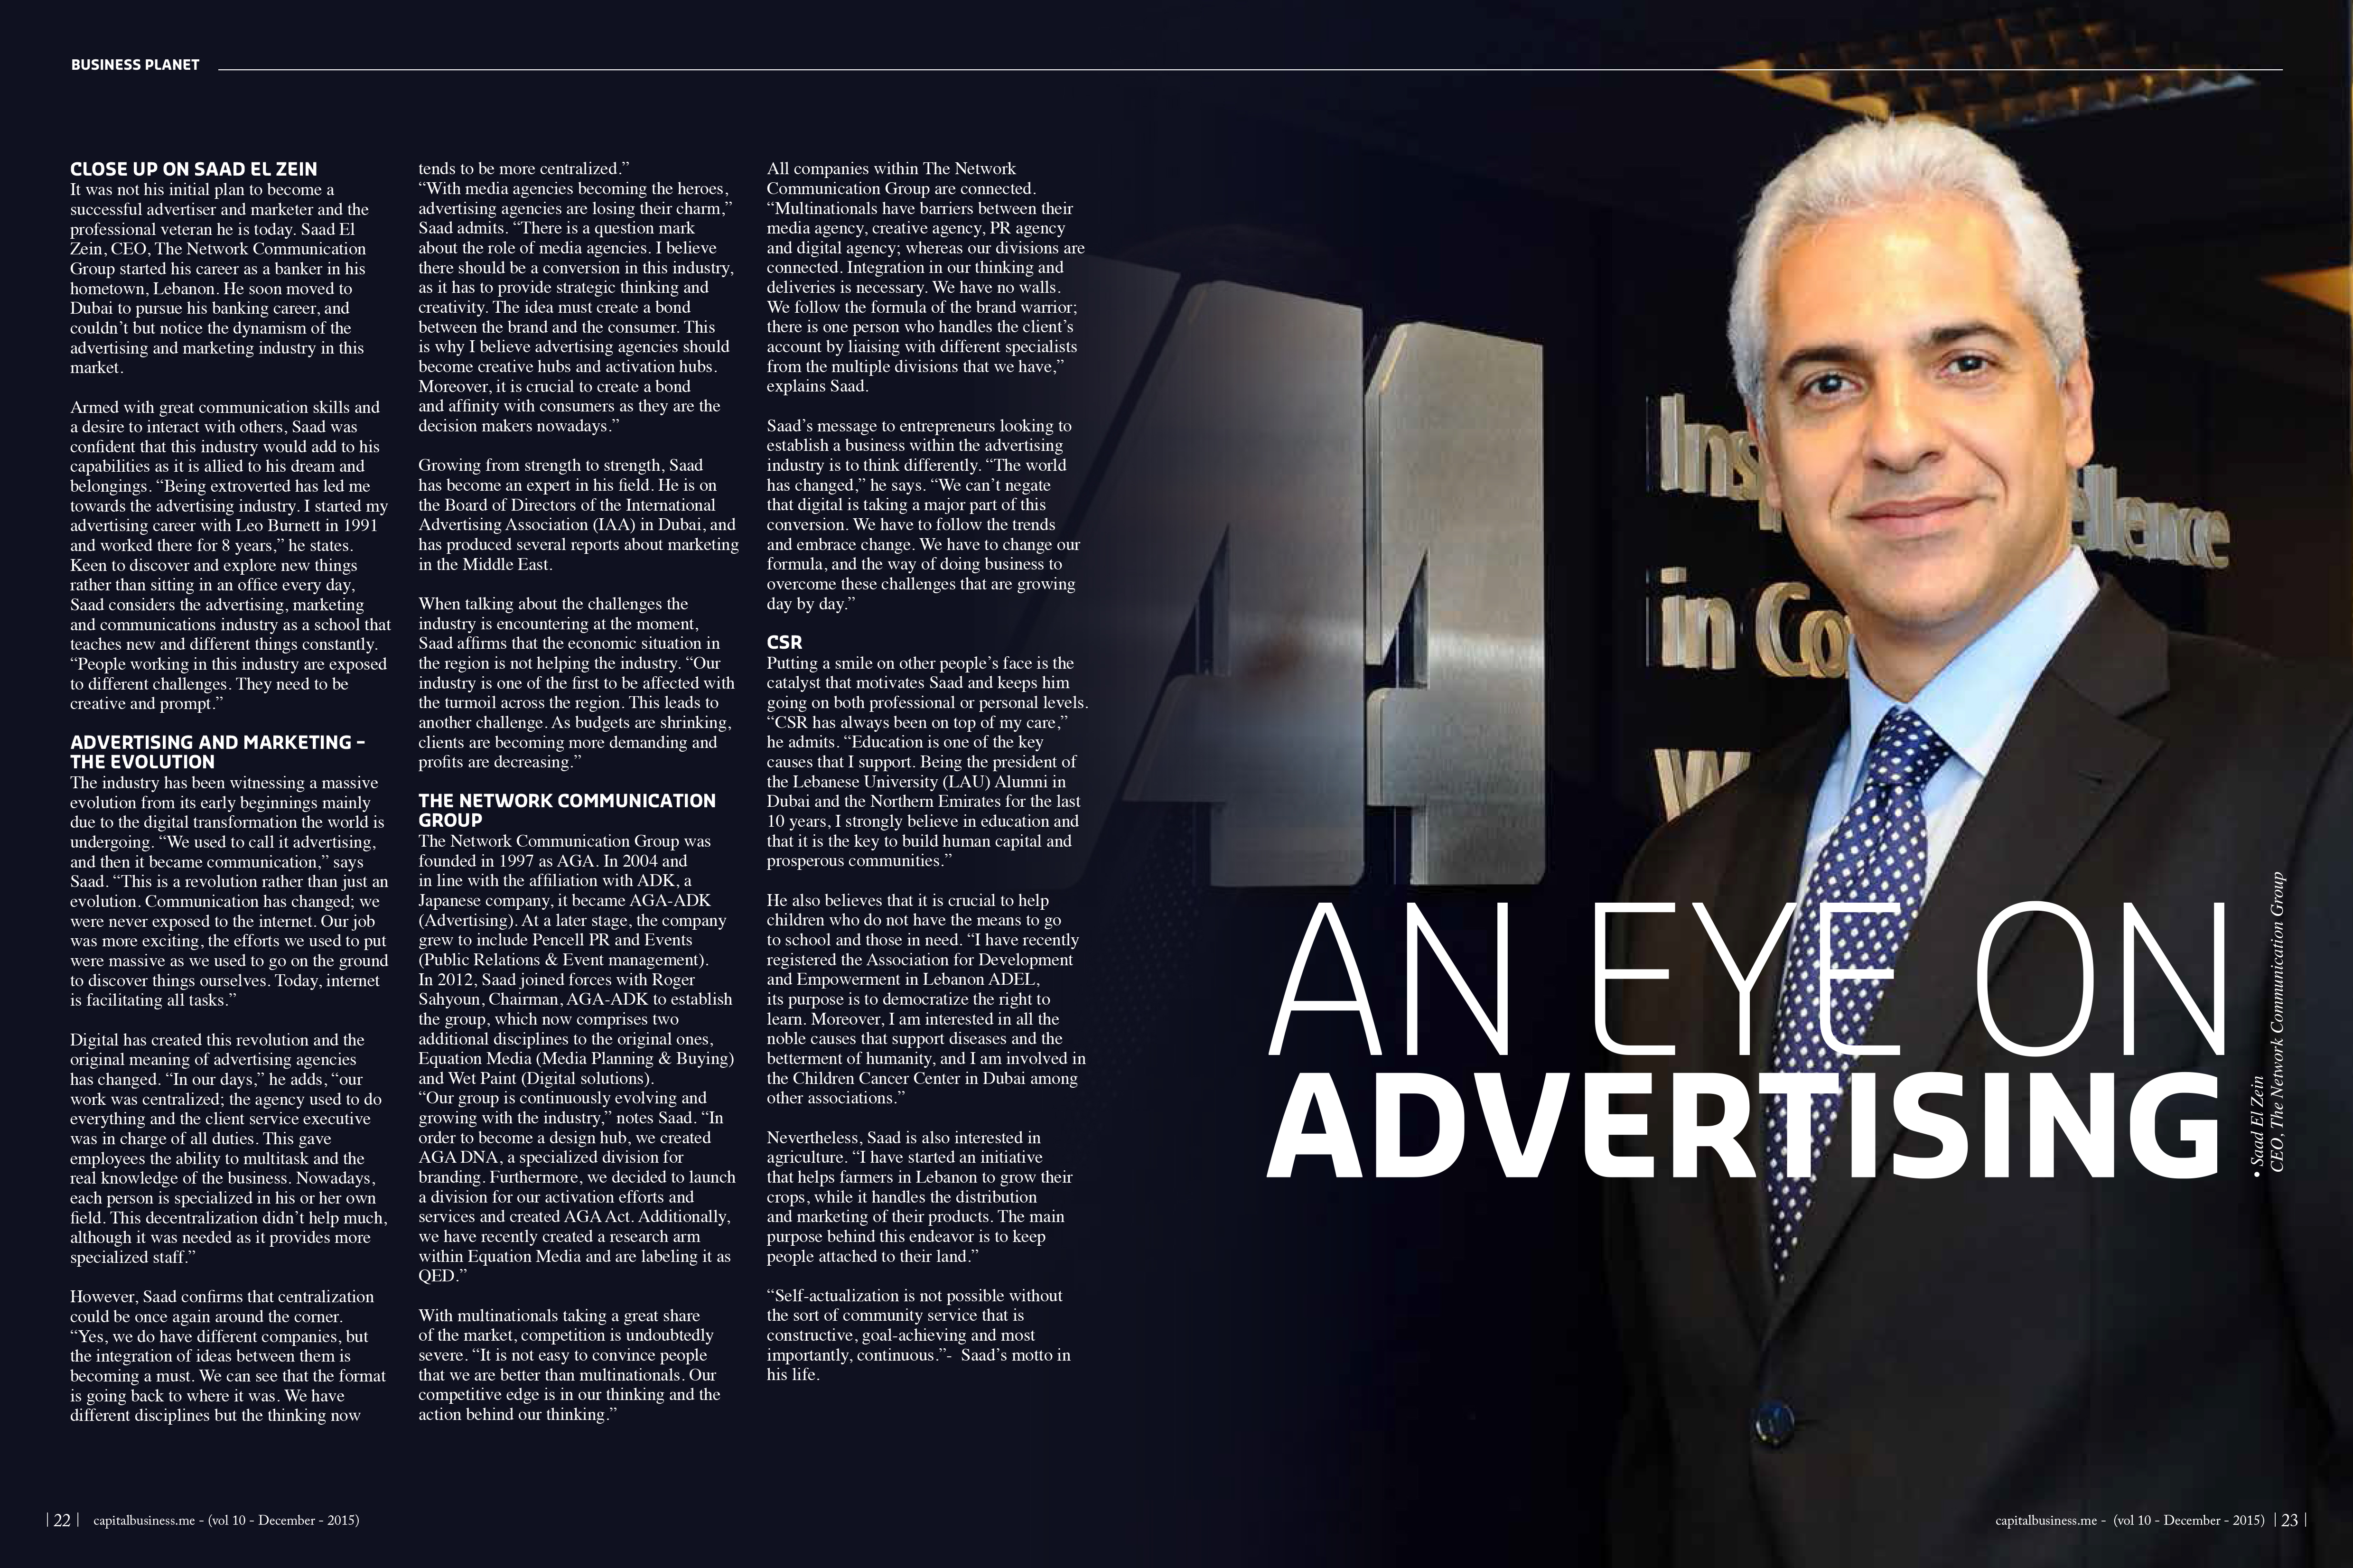 An Article titled An EyesOn Advertising by Capital Business magazine